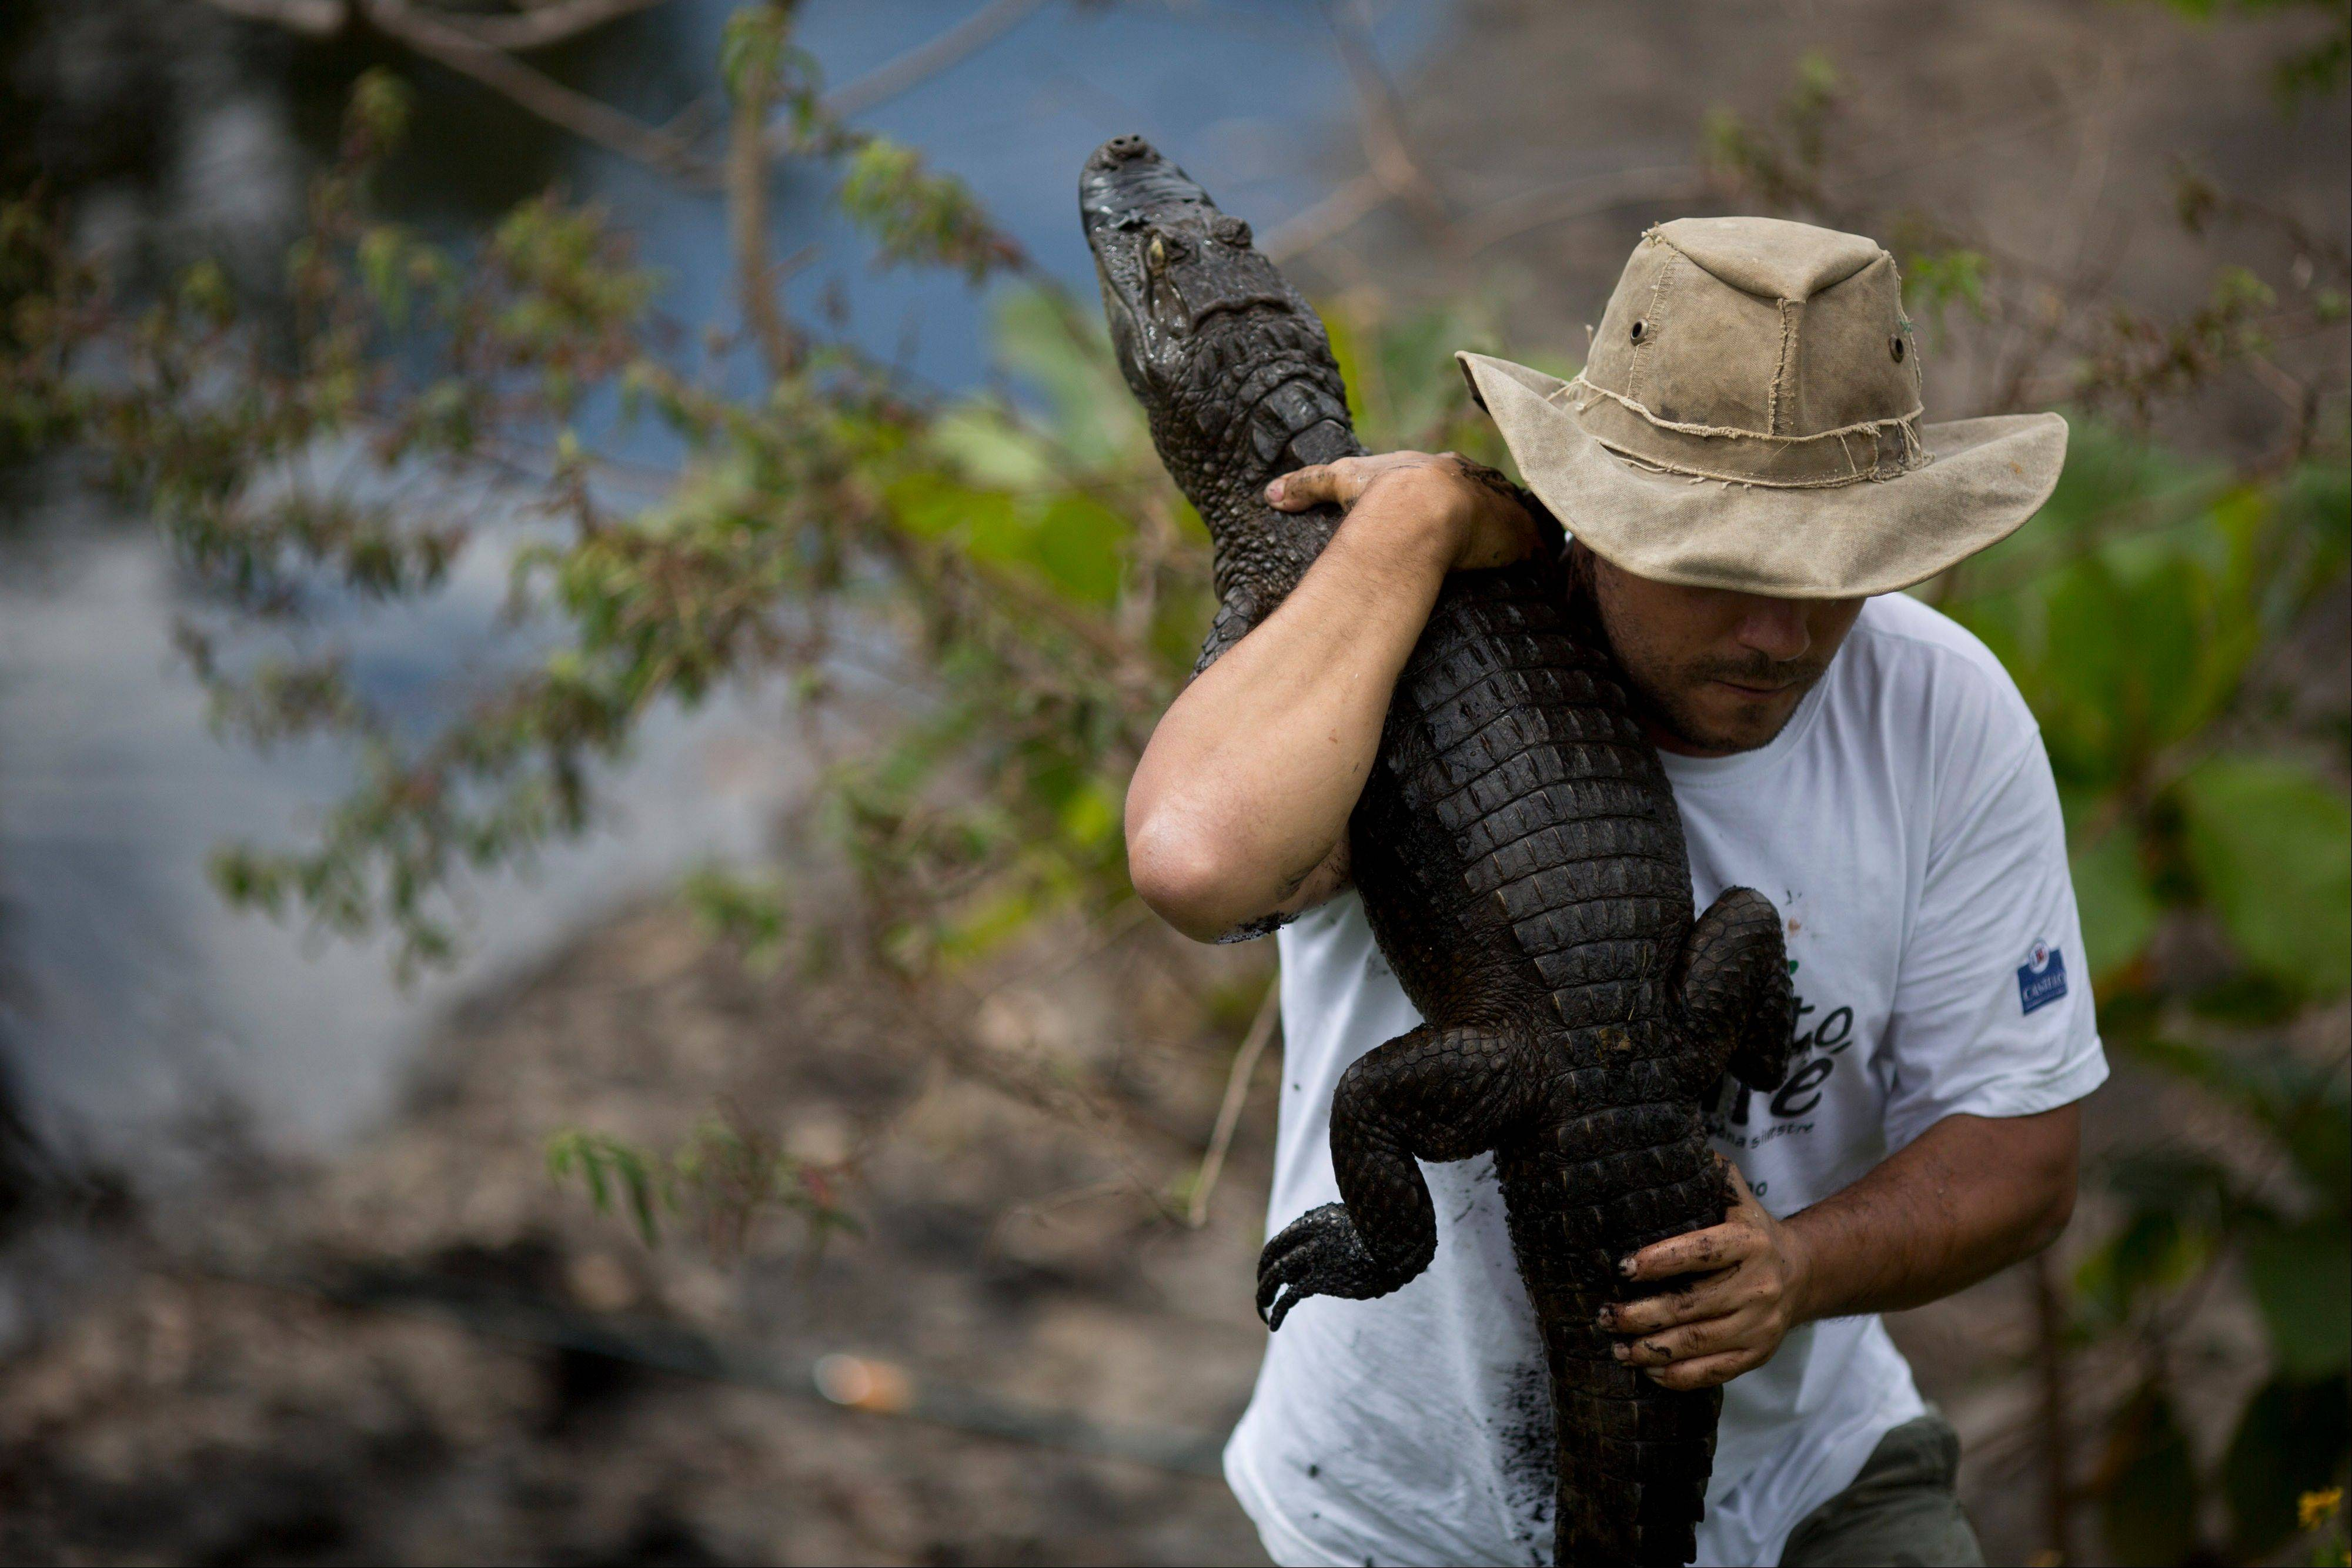 Ecology professor Ricardo Freitas holds onto to a broad-snouted caiman he caught to examine, then release back into the water channel in the affluent Recreio dos Bandeirantes suburb of Rio de Janeiro, Brazil. With a population thatís 85 percent male, a serious demographic problem is looming for Rioís caimans, said Freitas, who suspects that the uncontrolled release of raw sewage is behind the gender imbalance. Organic matter raises water warmer and among caimans, high temperatures during a certain stage of incubation result in male offspring.